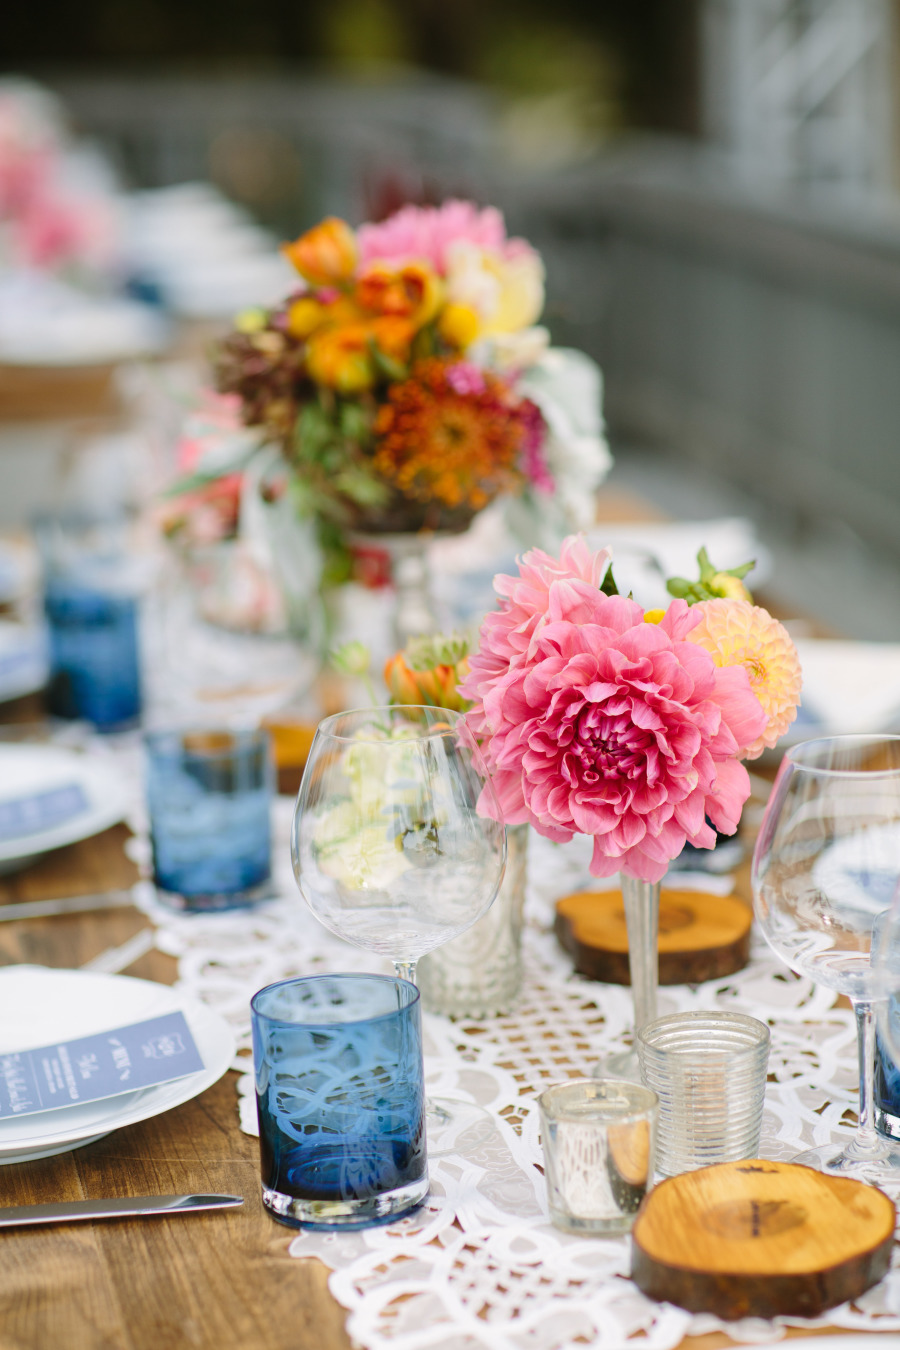 Stunning wedding tablescapes ideas | itakeyou.co.uk